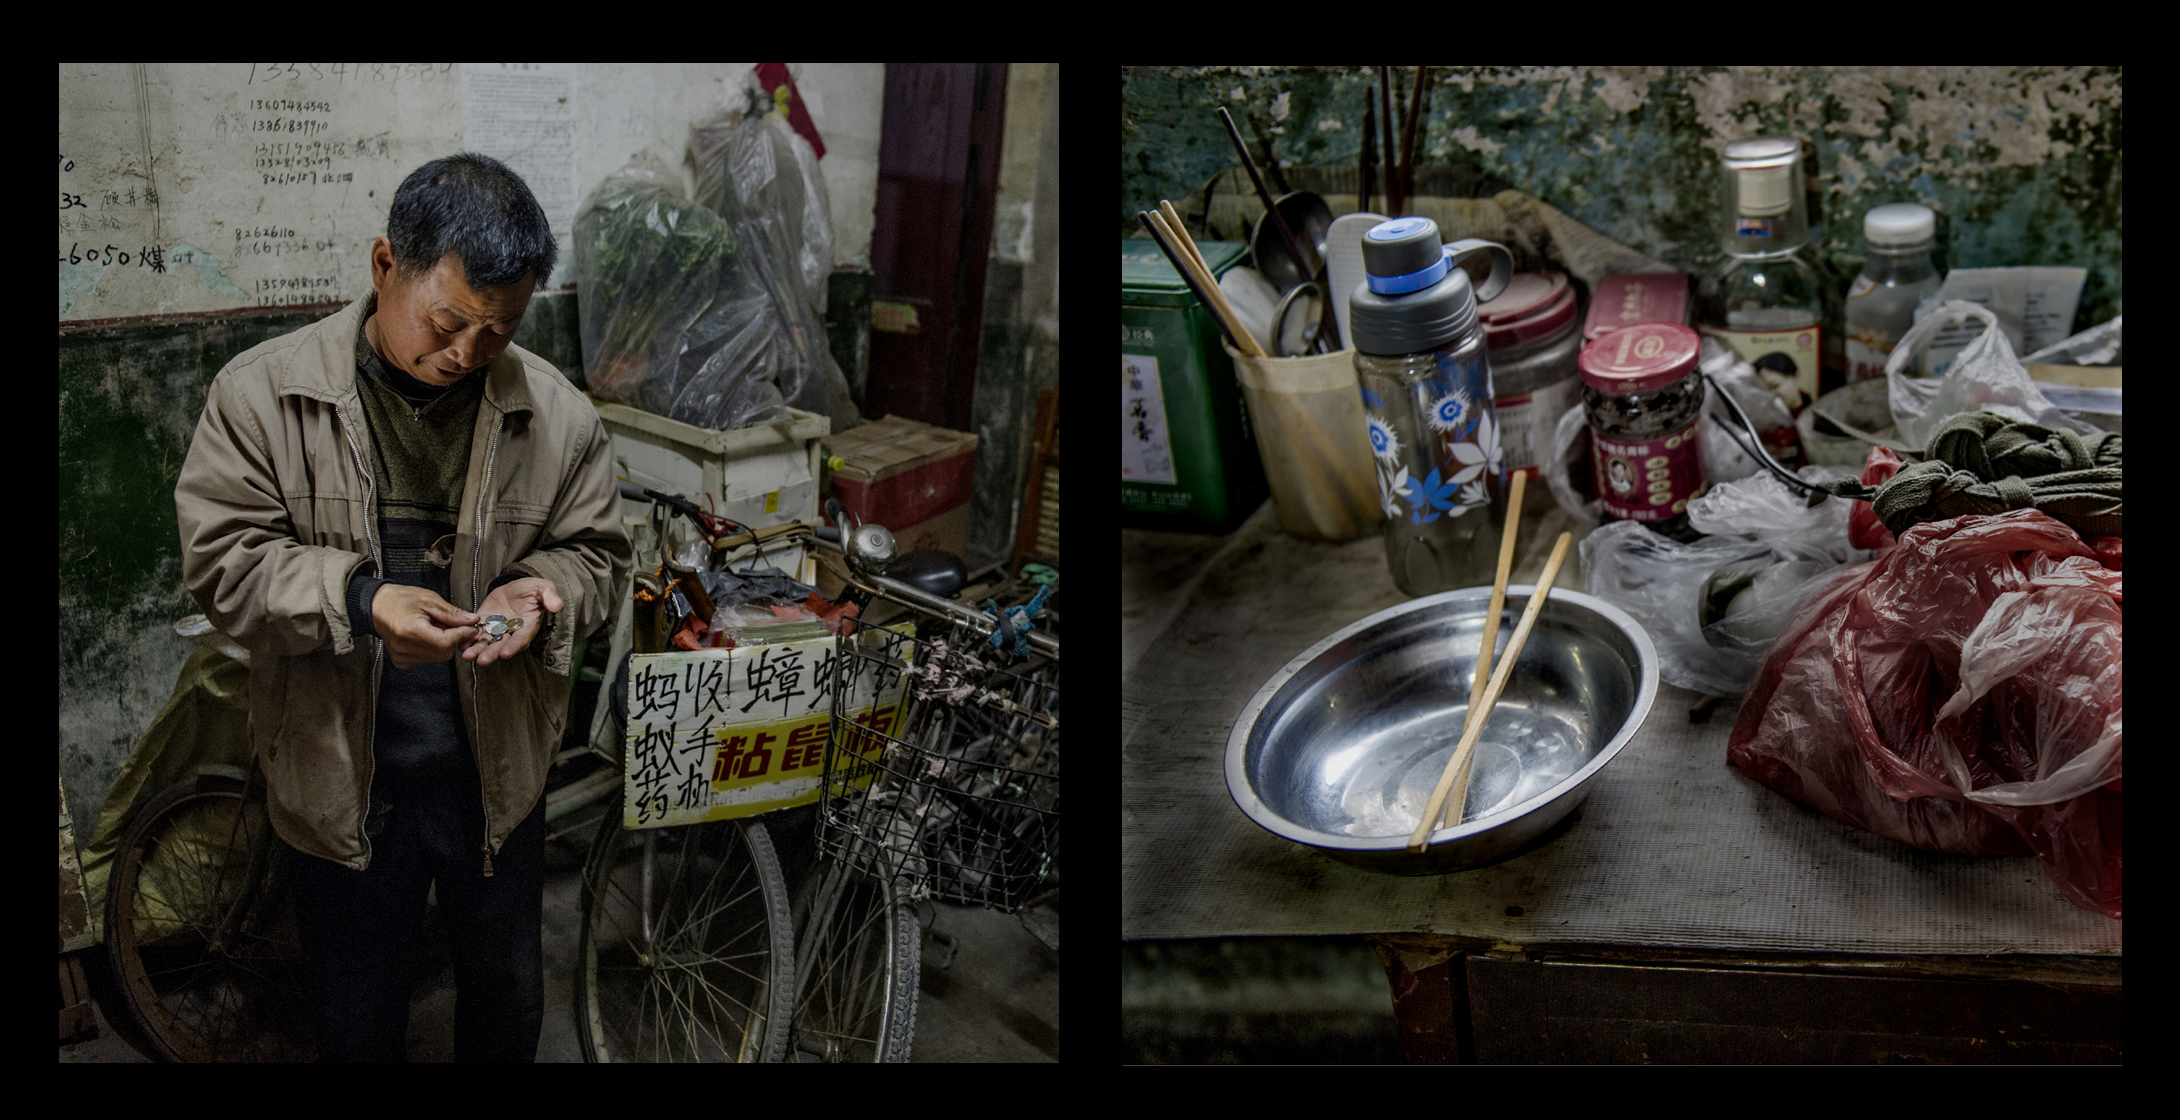 """Wang Zhiyong, 53, from Bengbu, Anhui, made his living buying used cell phones. He lived at the Paddy's Edge for more than 20 years. He was often the first of the residents to leave for work in the morning, returning home late at night. He sometimes biked 40 or 50 kilometers to do business in other districts. The residents of the Paddy's Edge called him a """"model worker."""""""